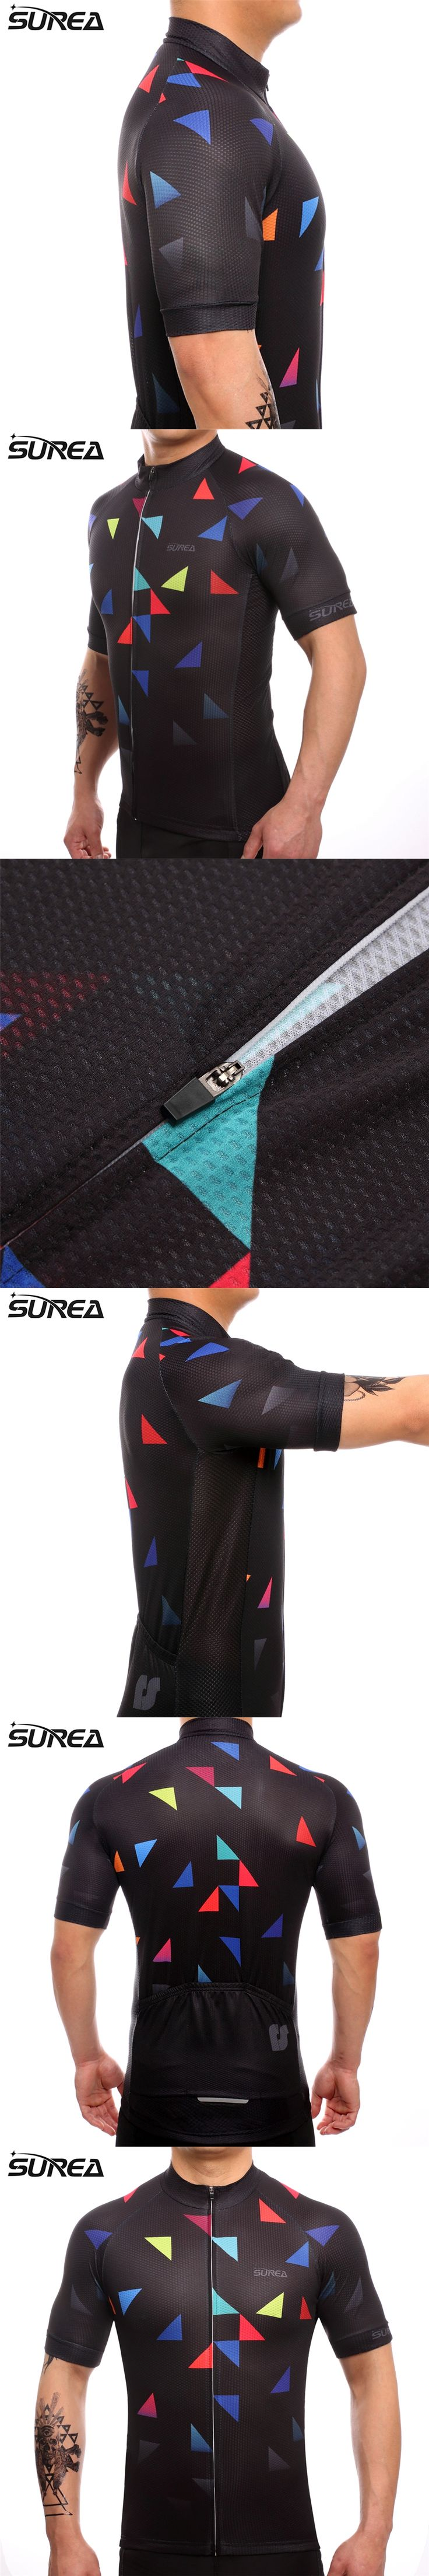 SUREA 2017 Cycling jersey Summer Bicycle Clothing Maillot Ropa Ciclismo Hombre Short Sleeve Mountain Bike Sportswear